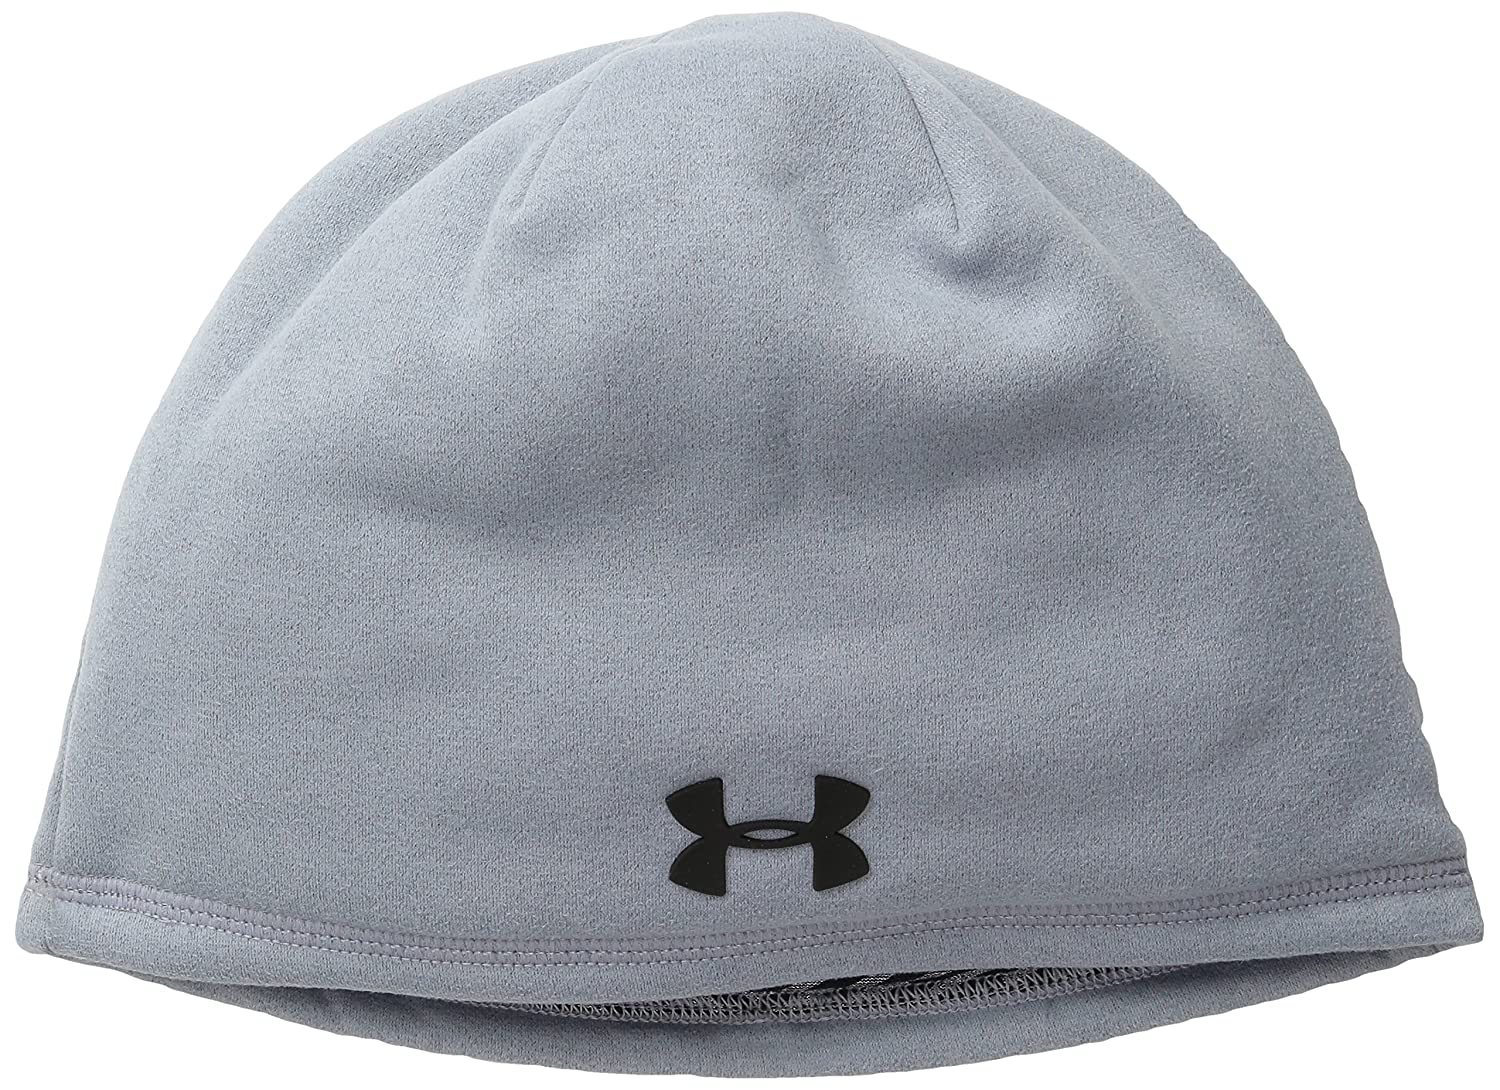 bde786cae07 Under Armour Men s Storm ColdGear Infrared Elements 2.0 Beanie ...